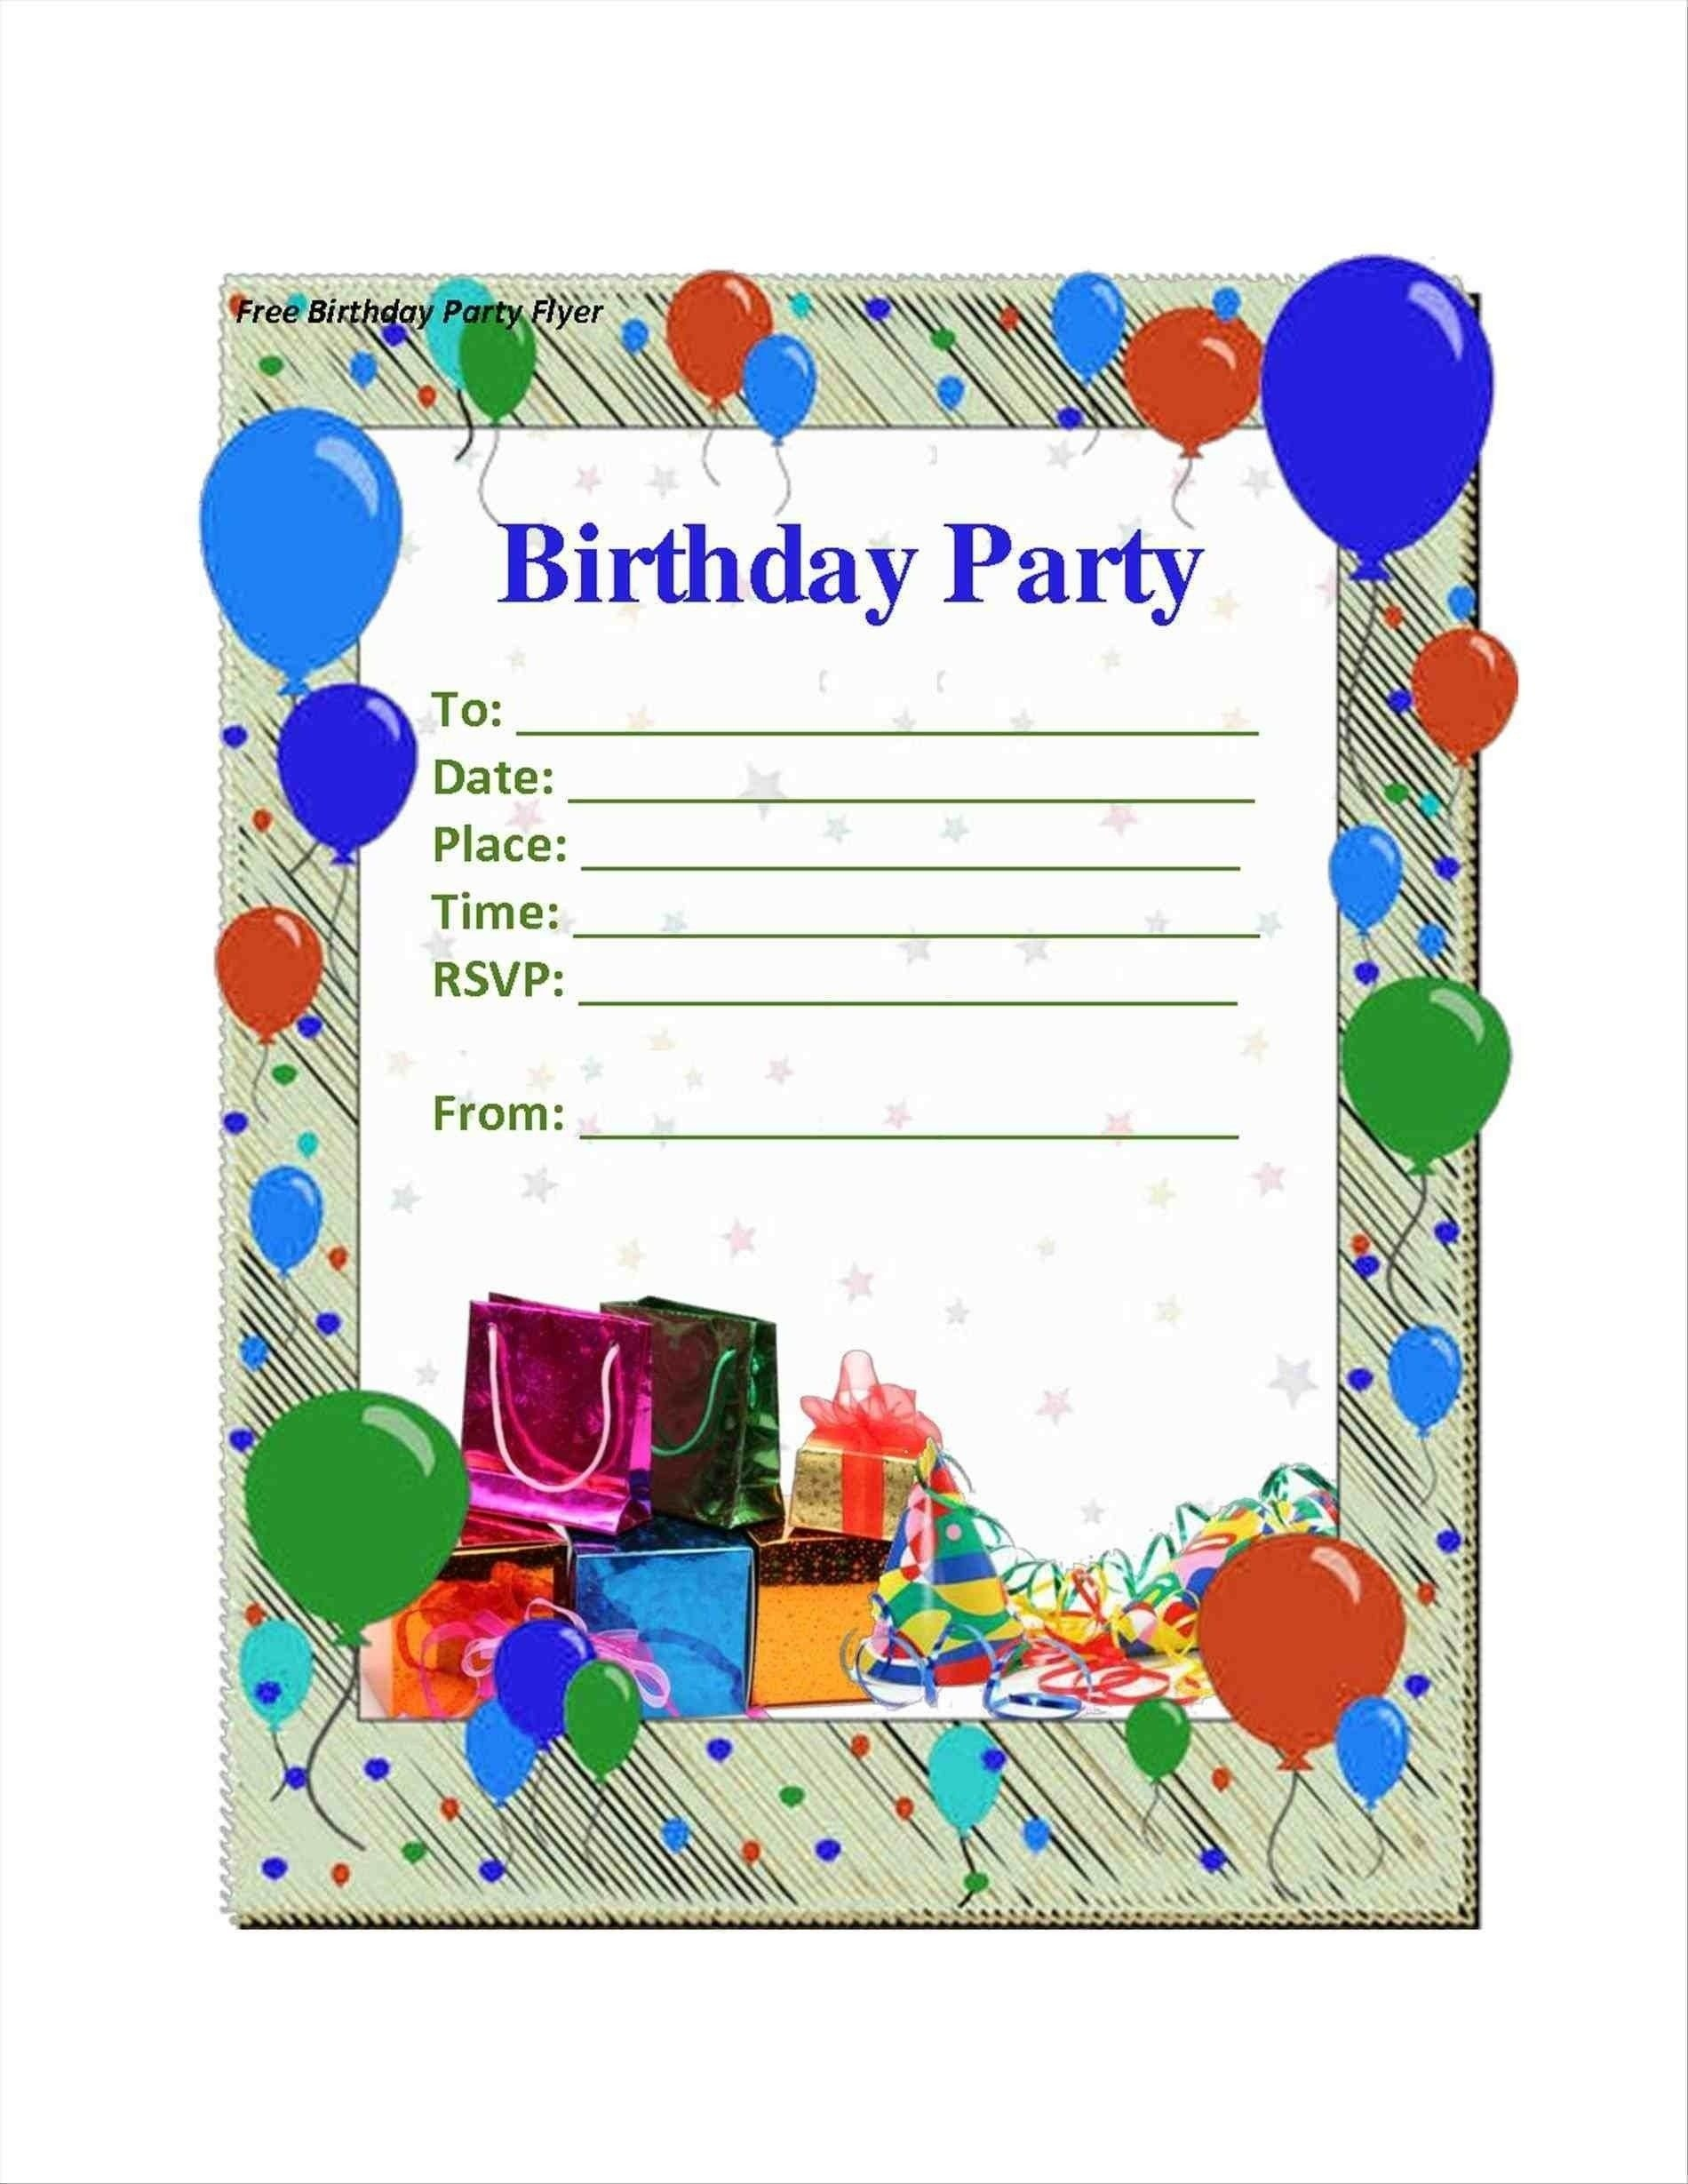 Party Invitation Ideas   Home Design In 2019   Free Birthday - Free Printable Birthday Party Flyers